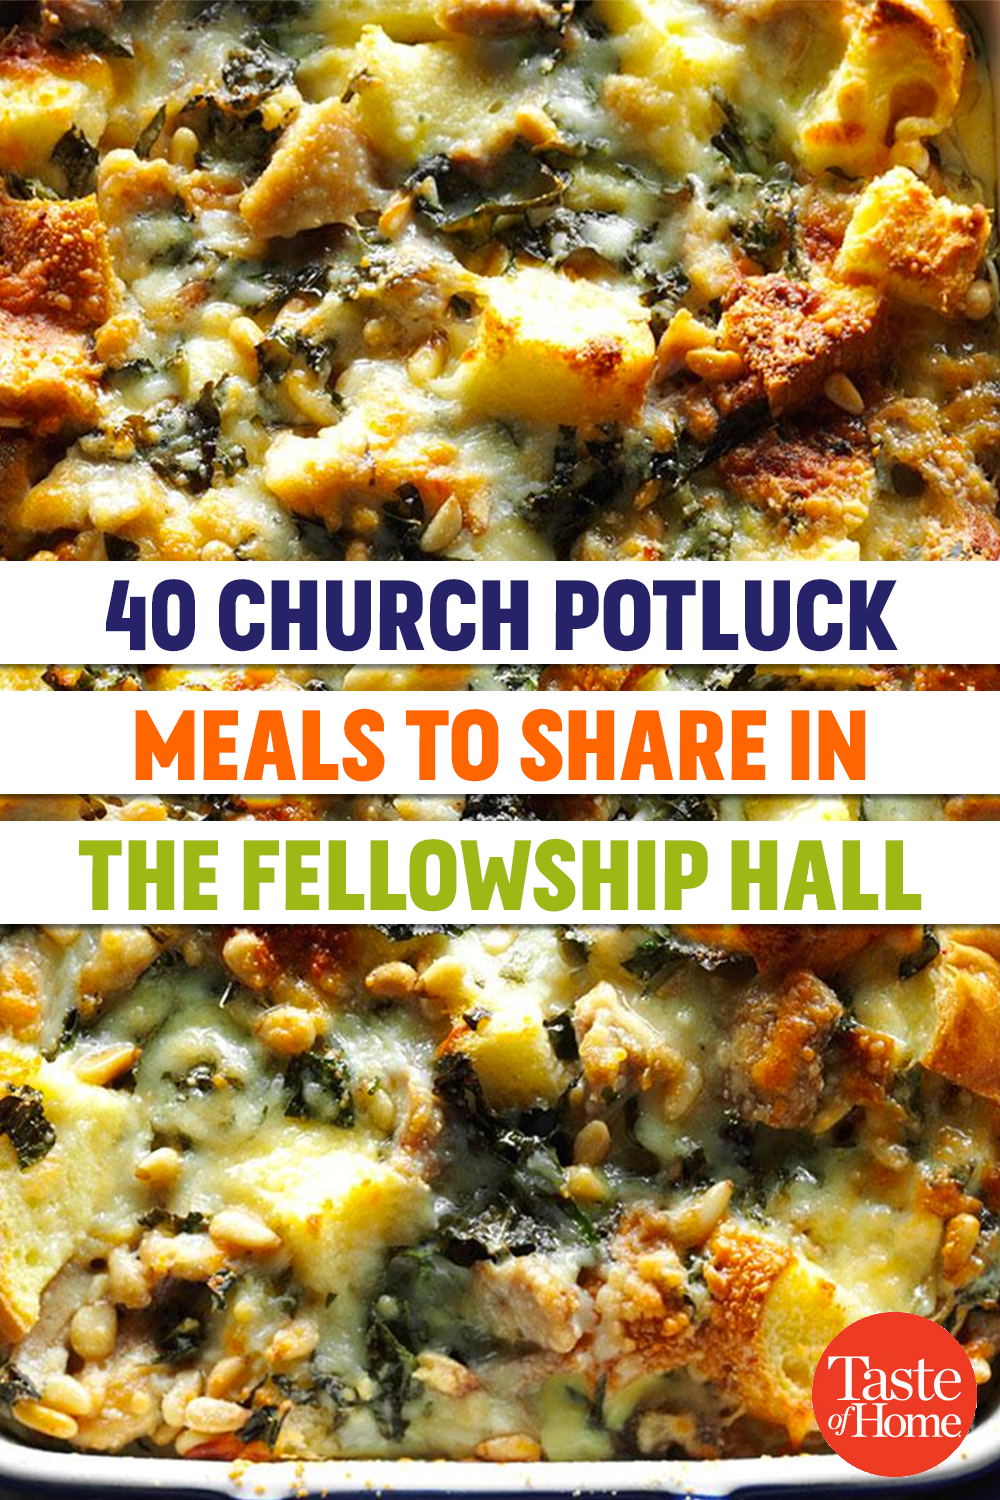 40 Potluck Meals to Share in the Fellowship Hall